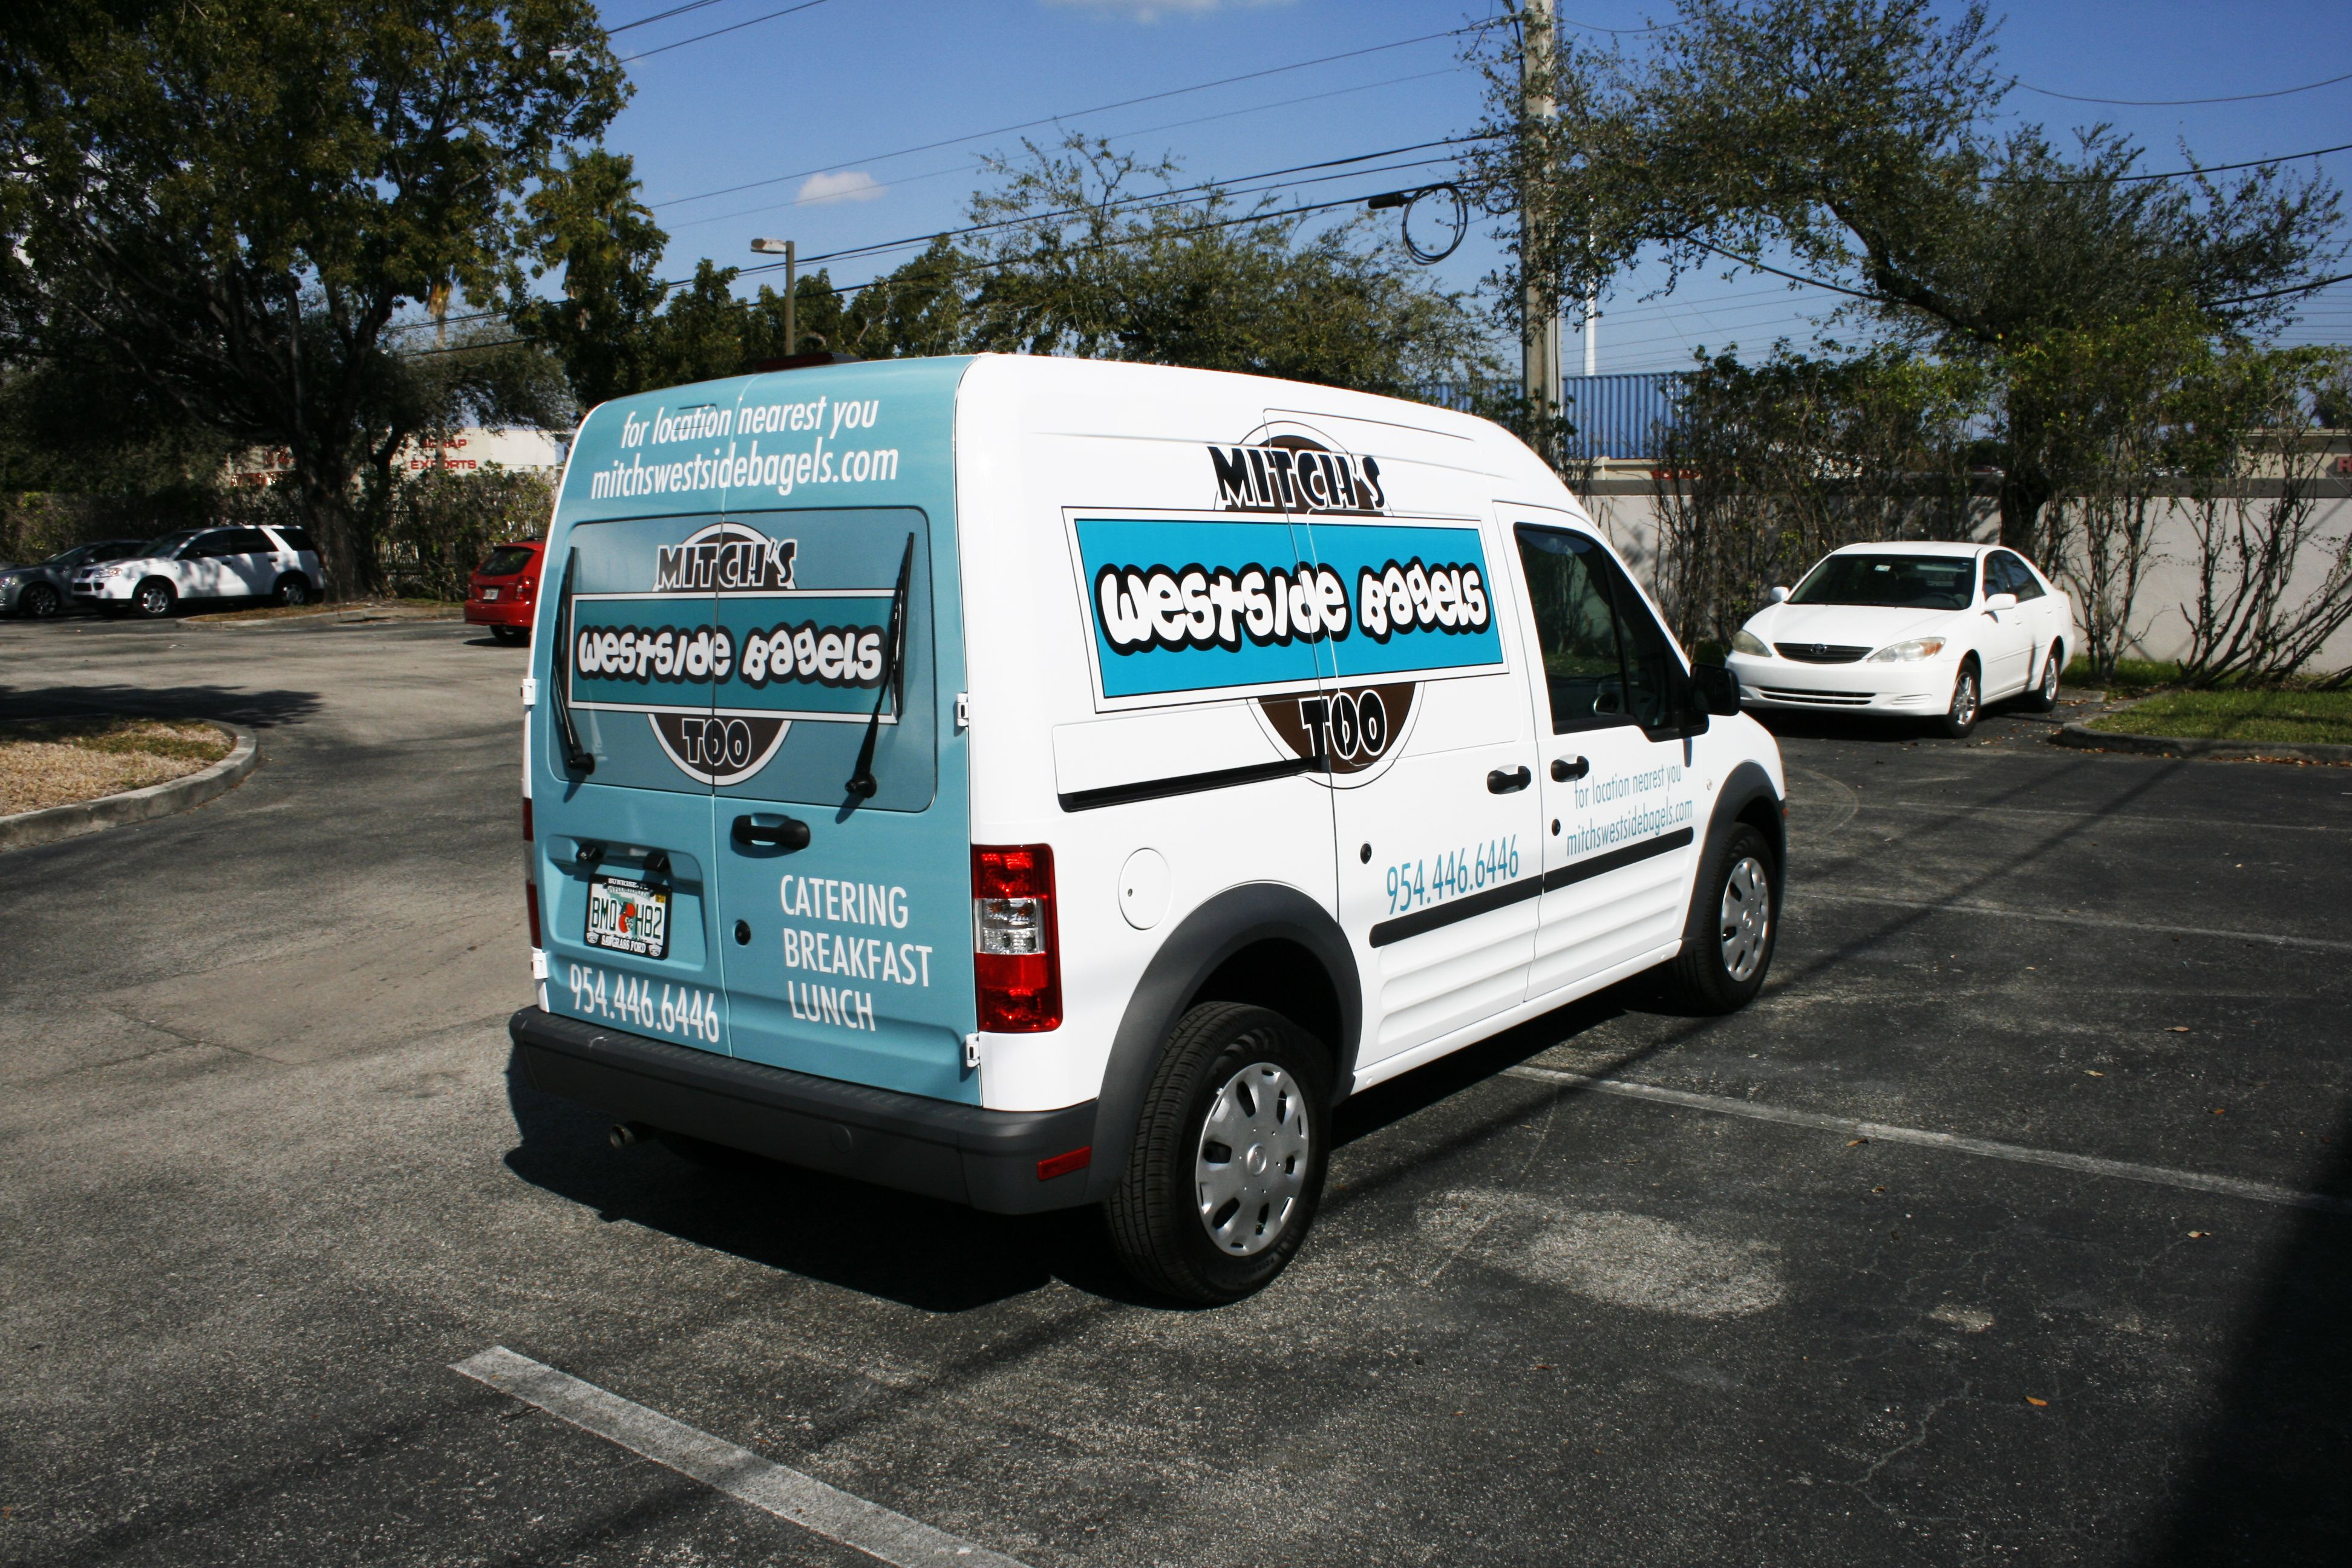 Ford transit connect vinyl graphics lettering mitch s bagels http www